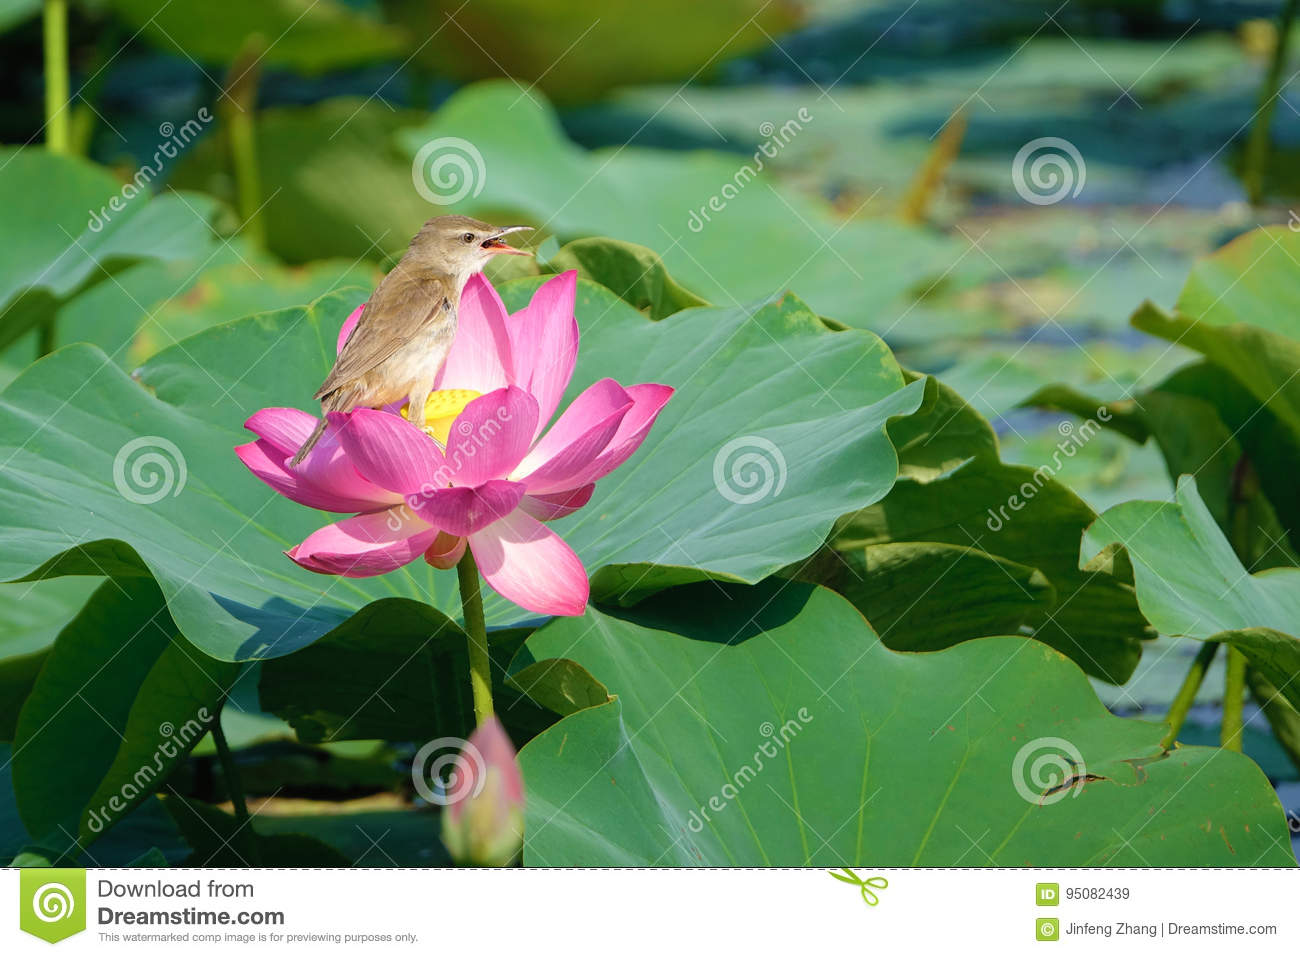 Bird and lotus stock image image of acrocephalus wildlife 95082439 the great reed warbler is eating bee in lotus flower mightylinksfo Choice Image